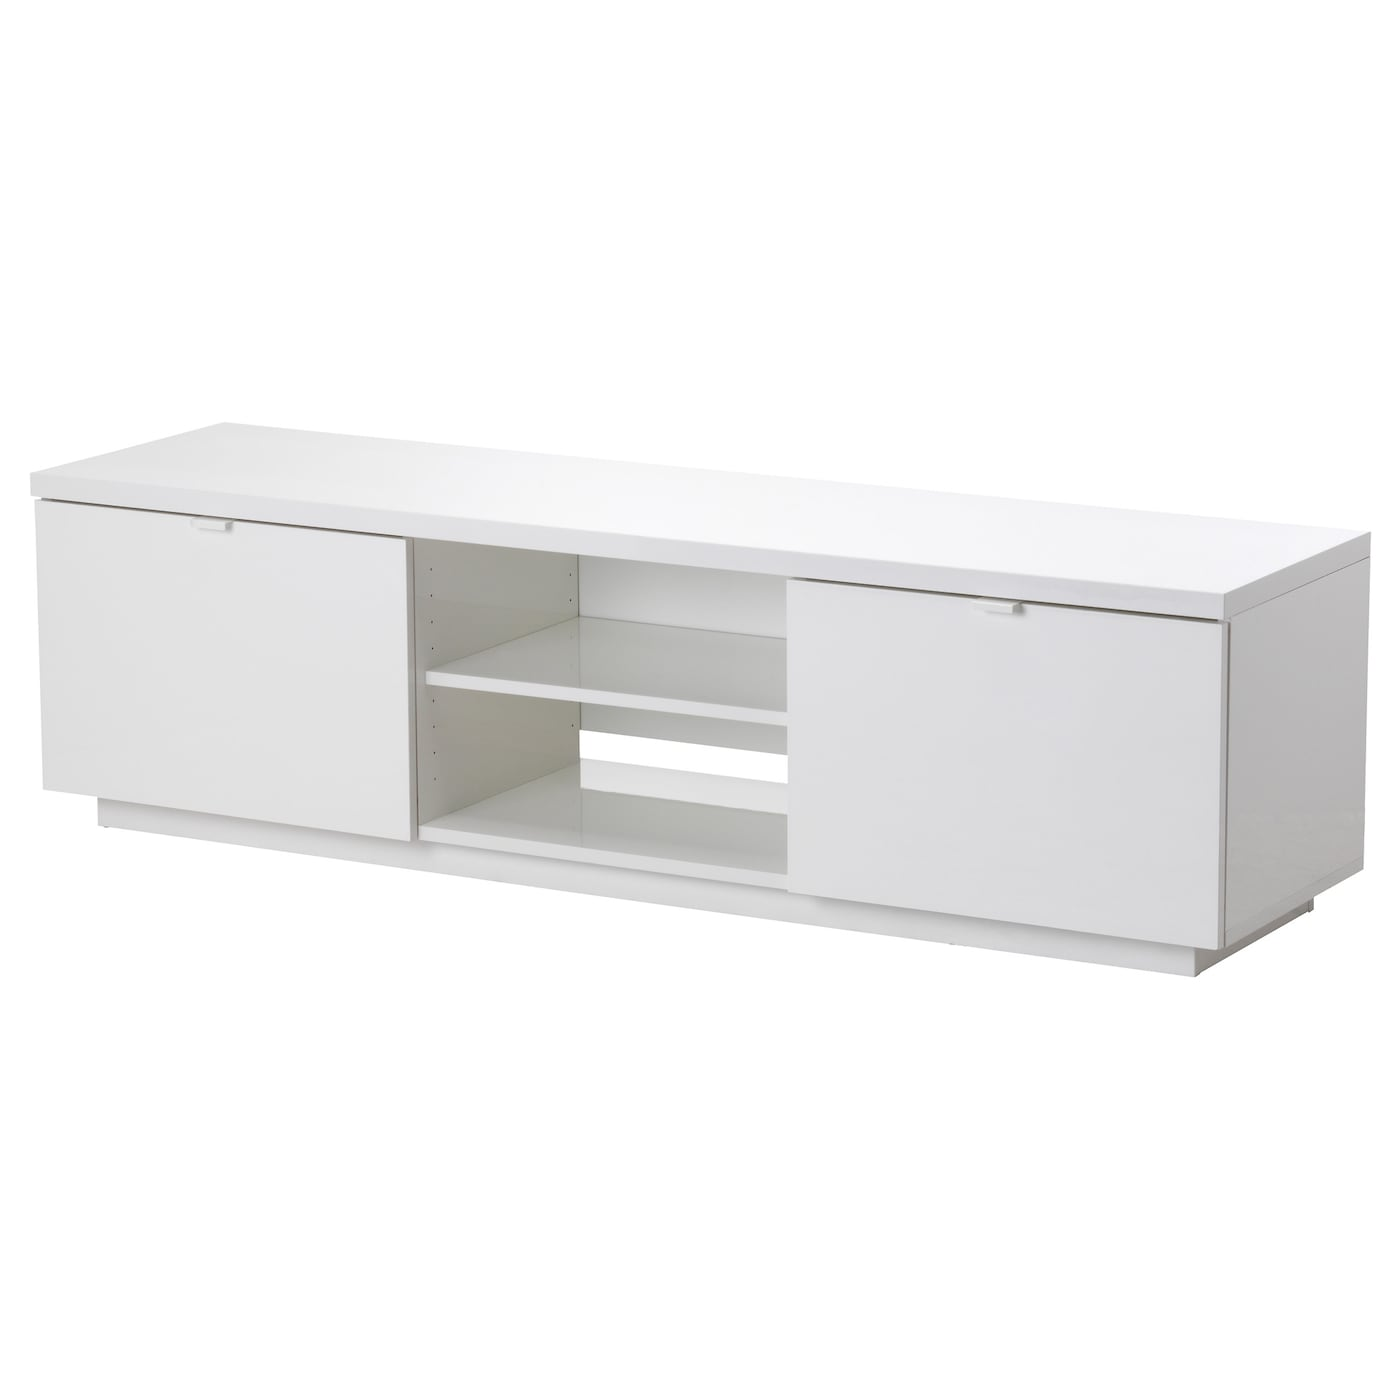 By s tv bench high gloss white 160x42x45 cm ikea - Meuble tele blanc ikea ...